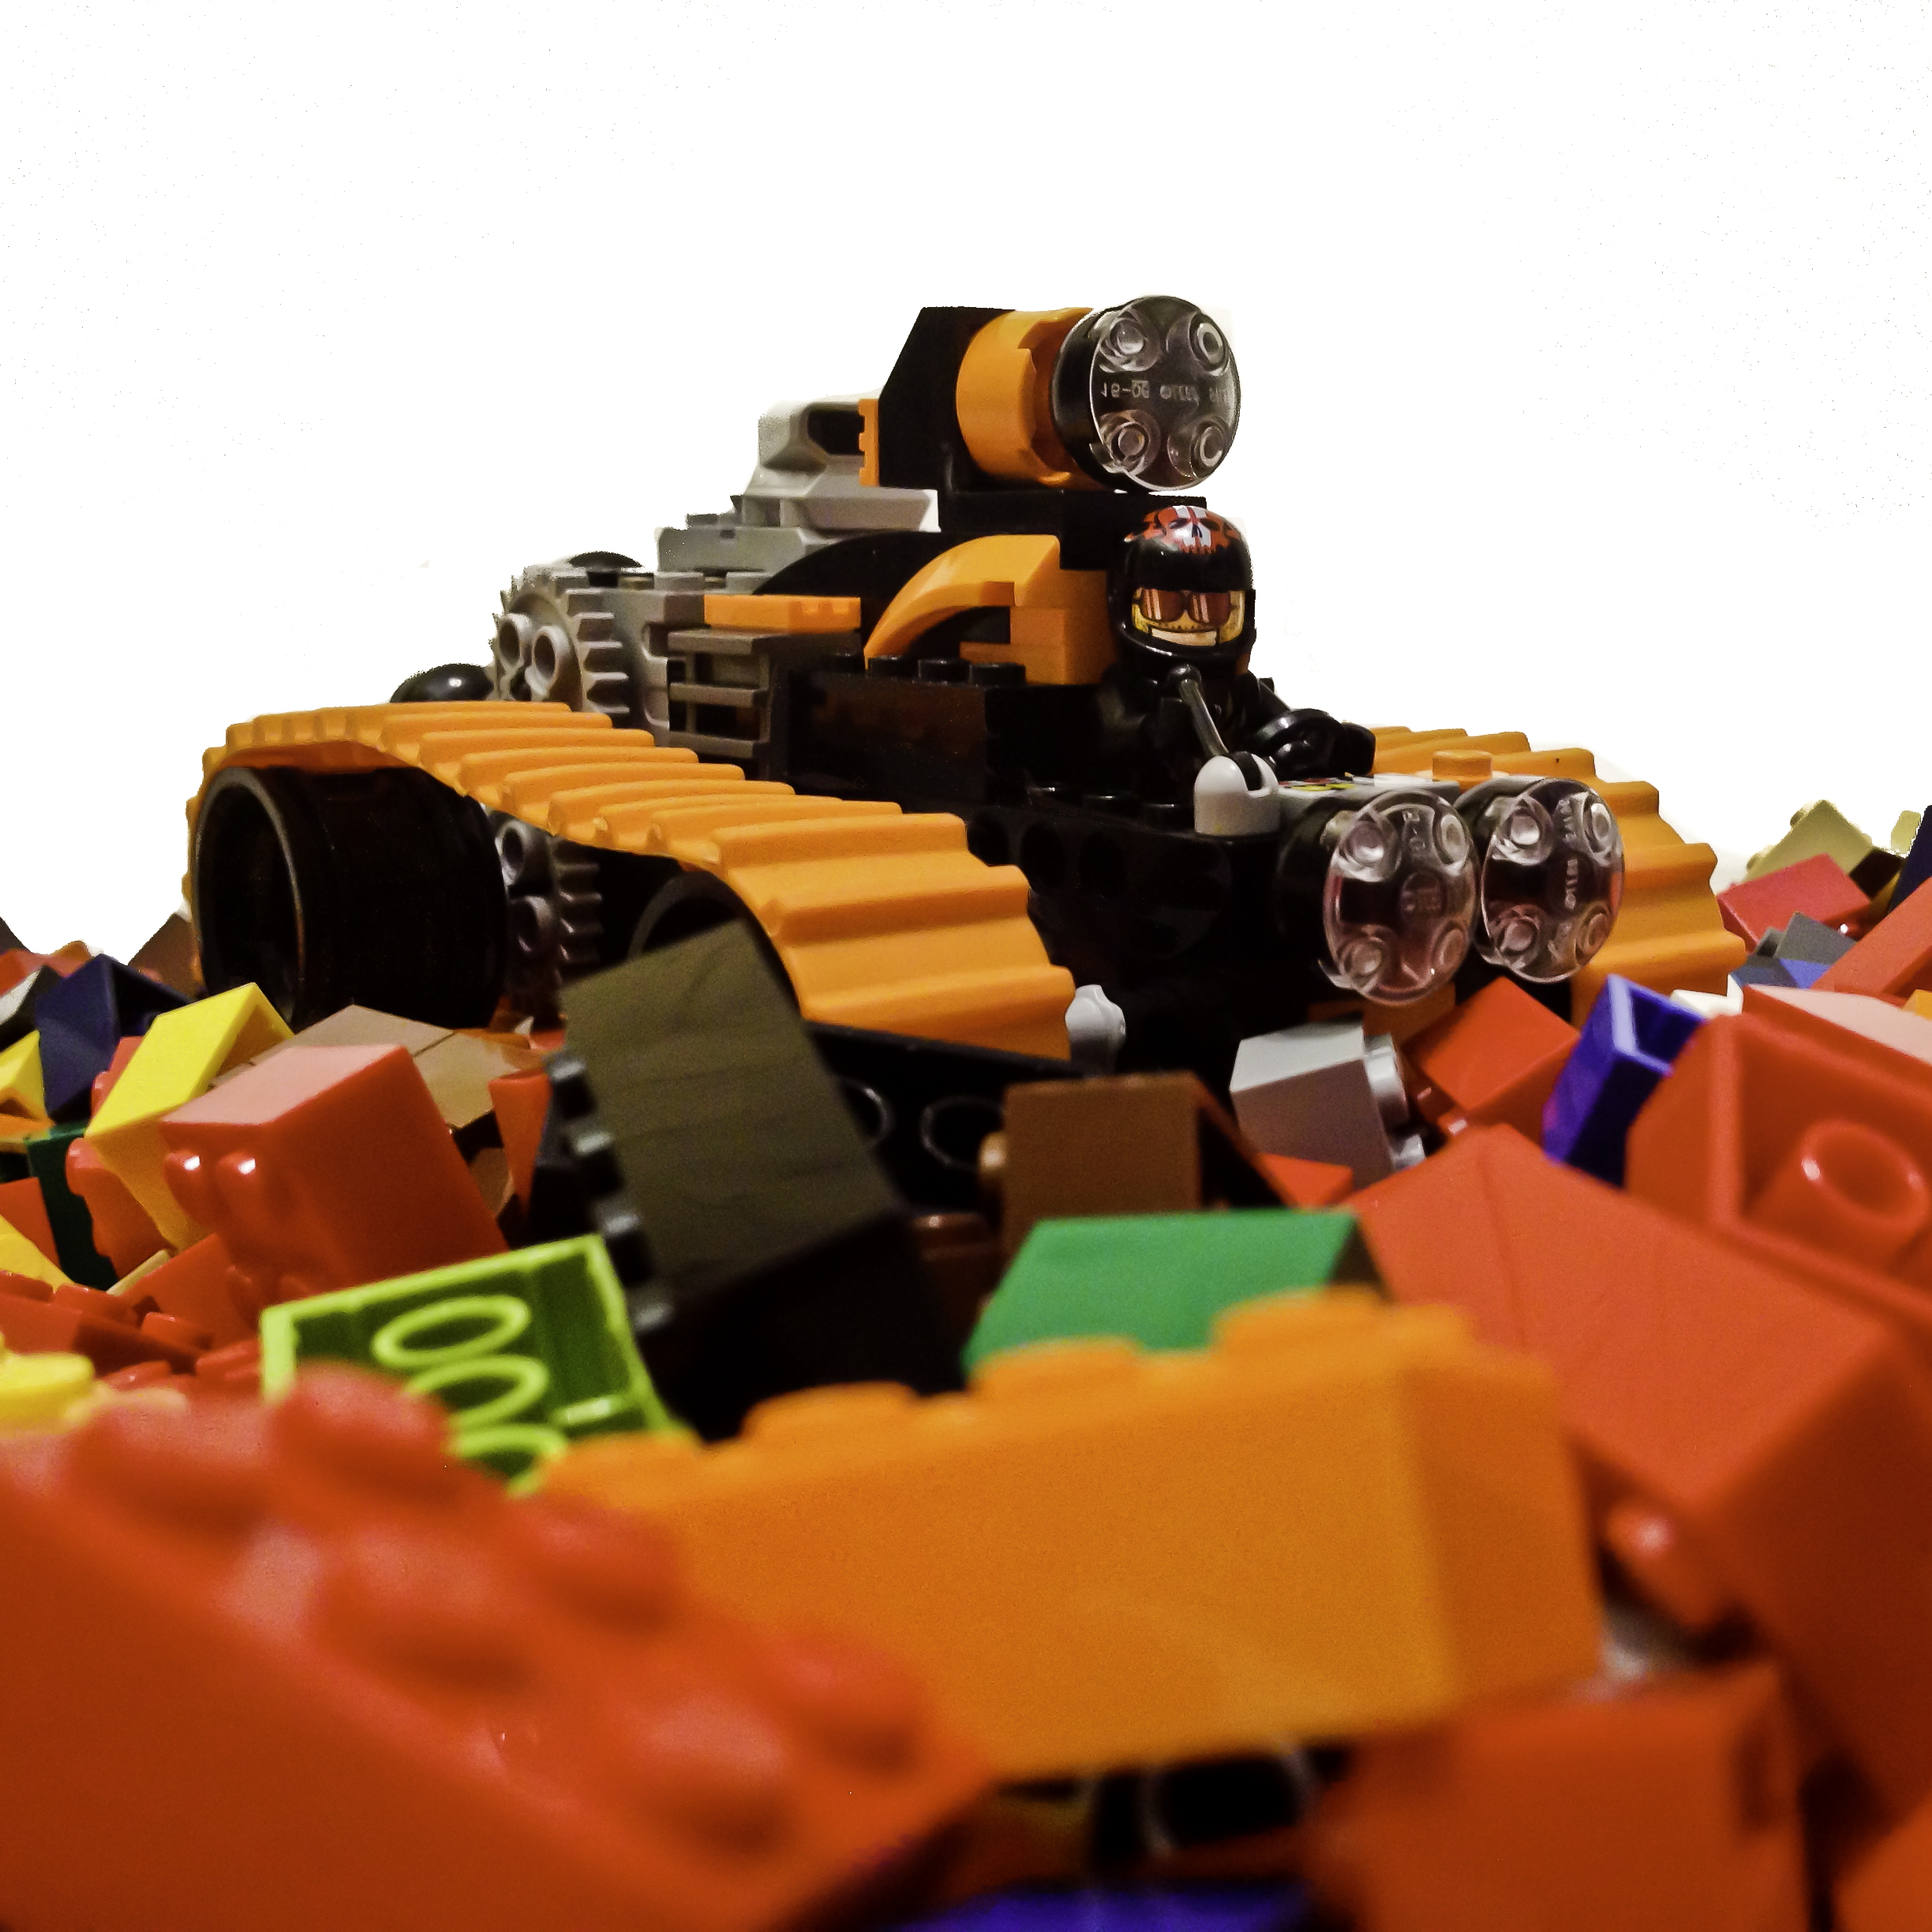 Motorized tank designed by Teo Lee with common LEGO® pieces.